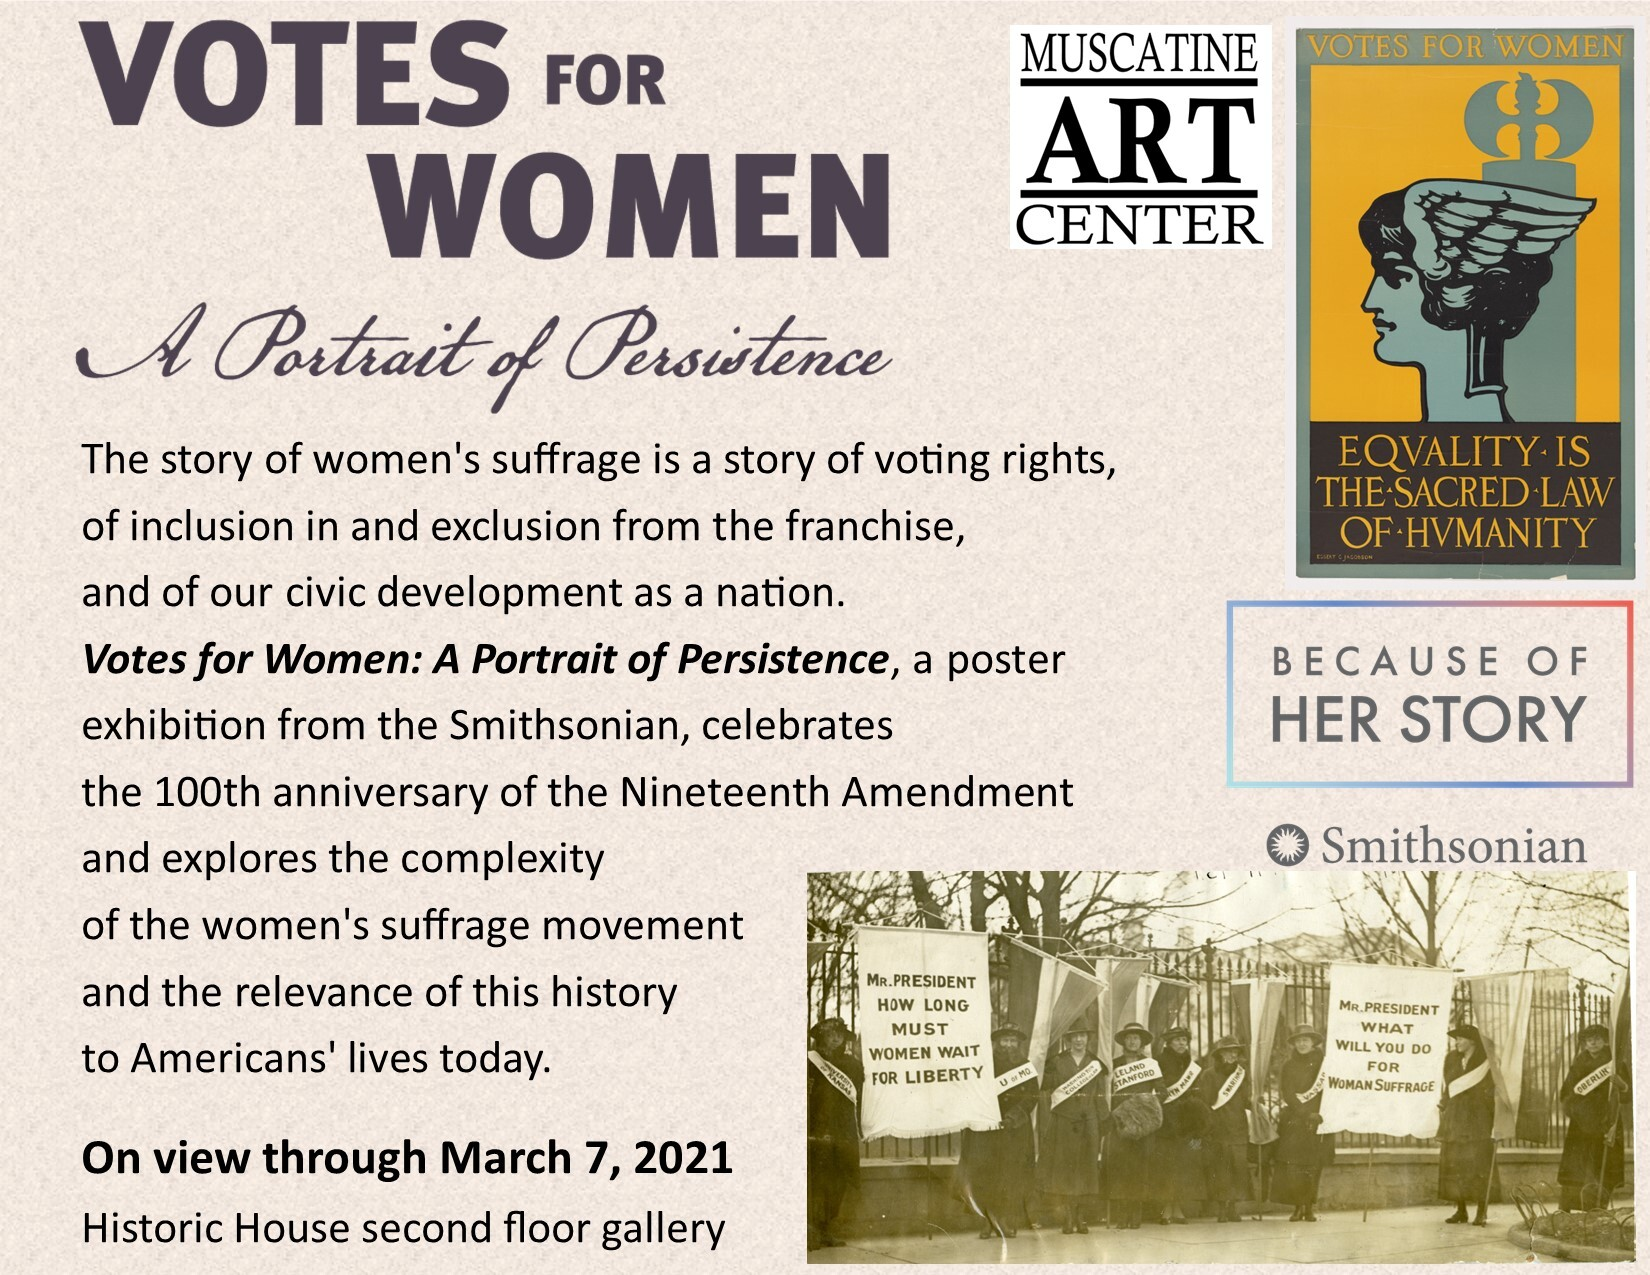 Votes for Women: A Portrait of Persistence Image